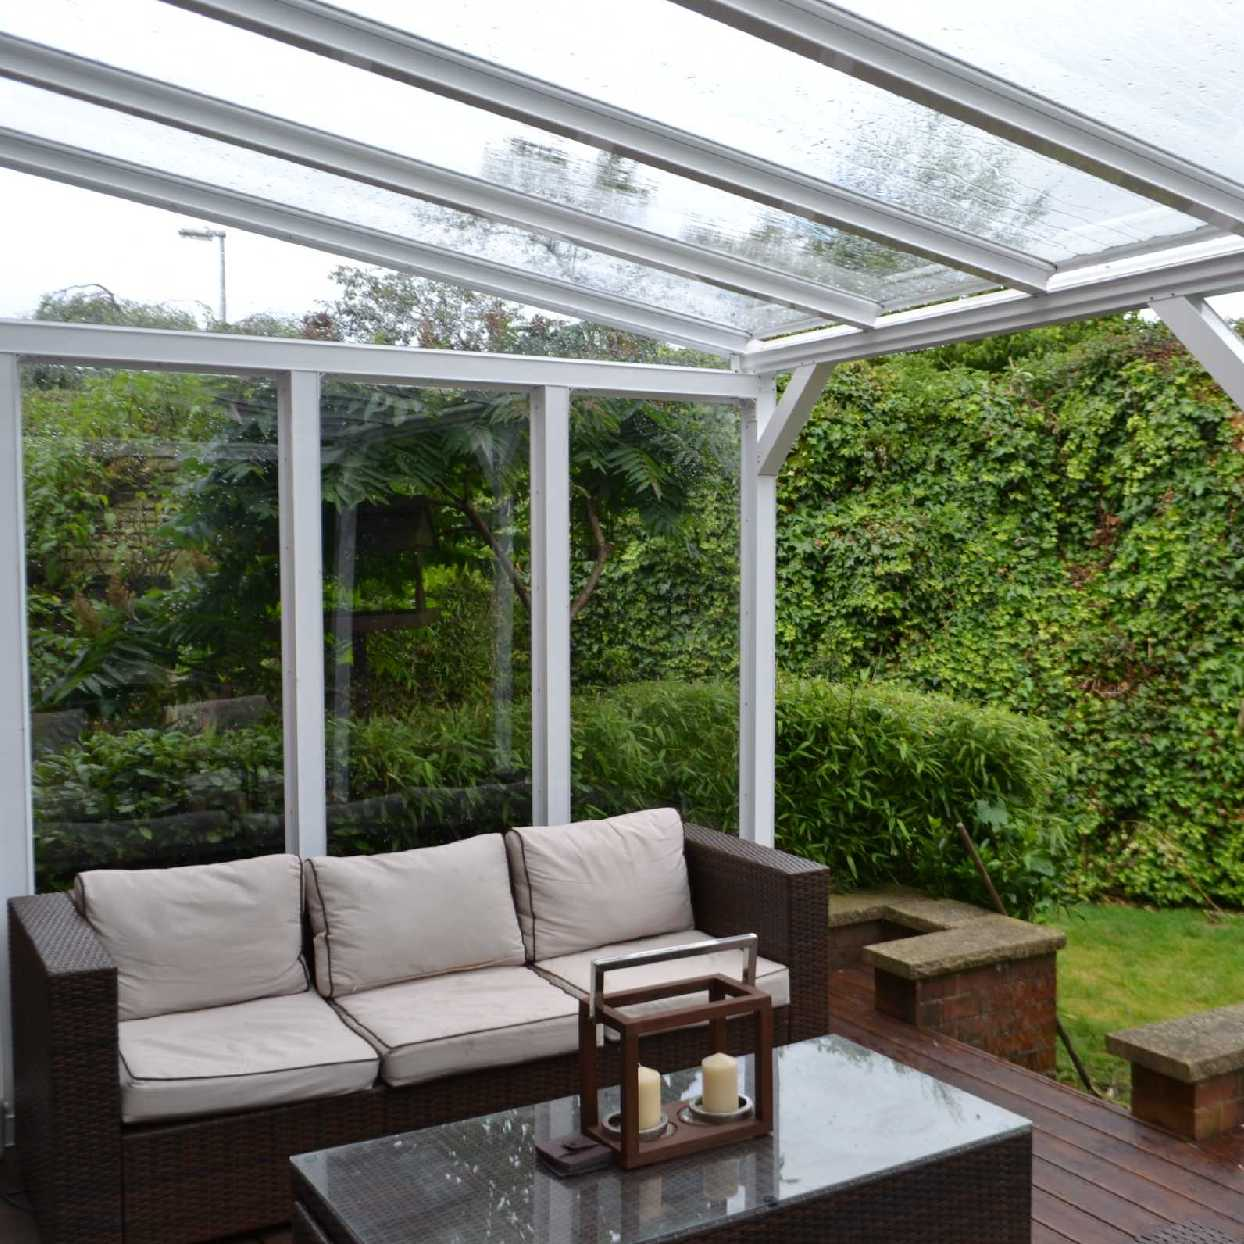 Omega Smart Lean-To Canopy with 6mm Glass Clear Plate Polycarbonate Glazing - 8.4m (W) x 3.5m (P), (4) Supporting Posts